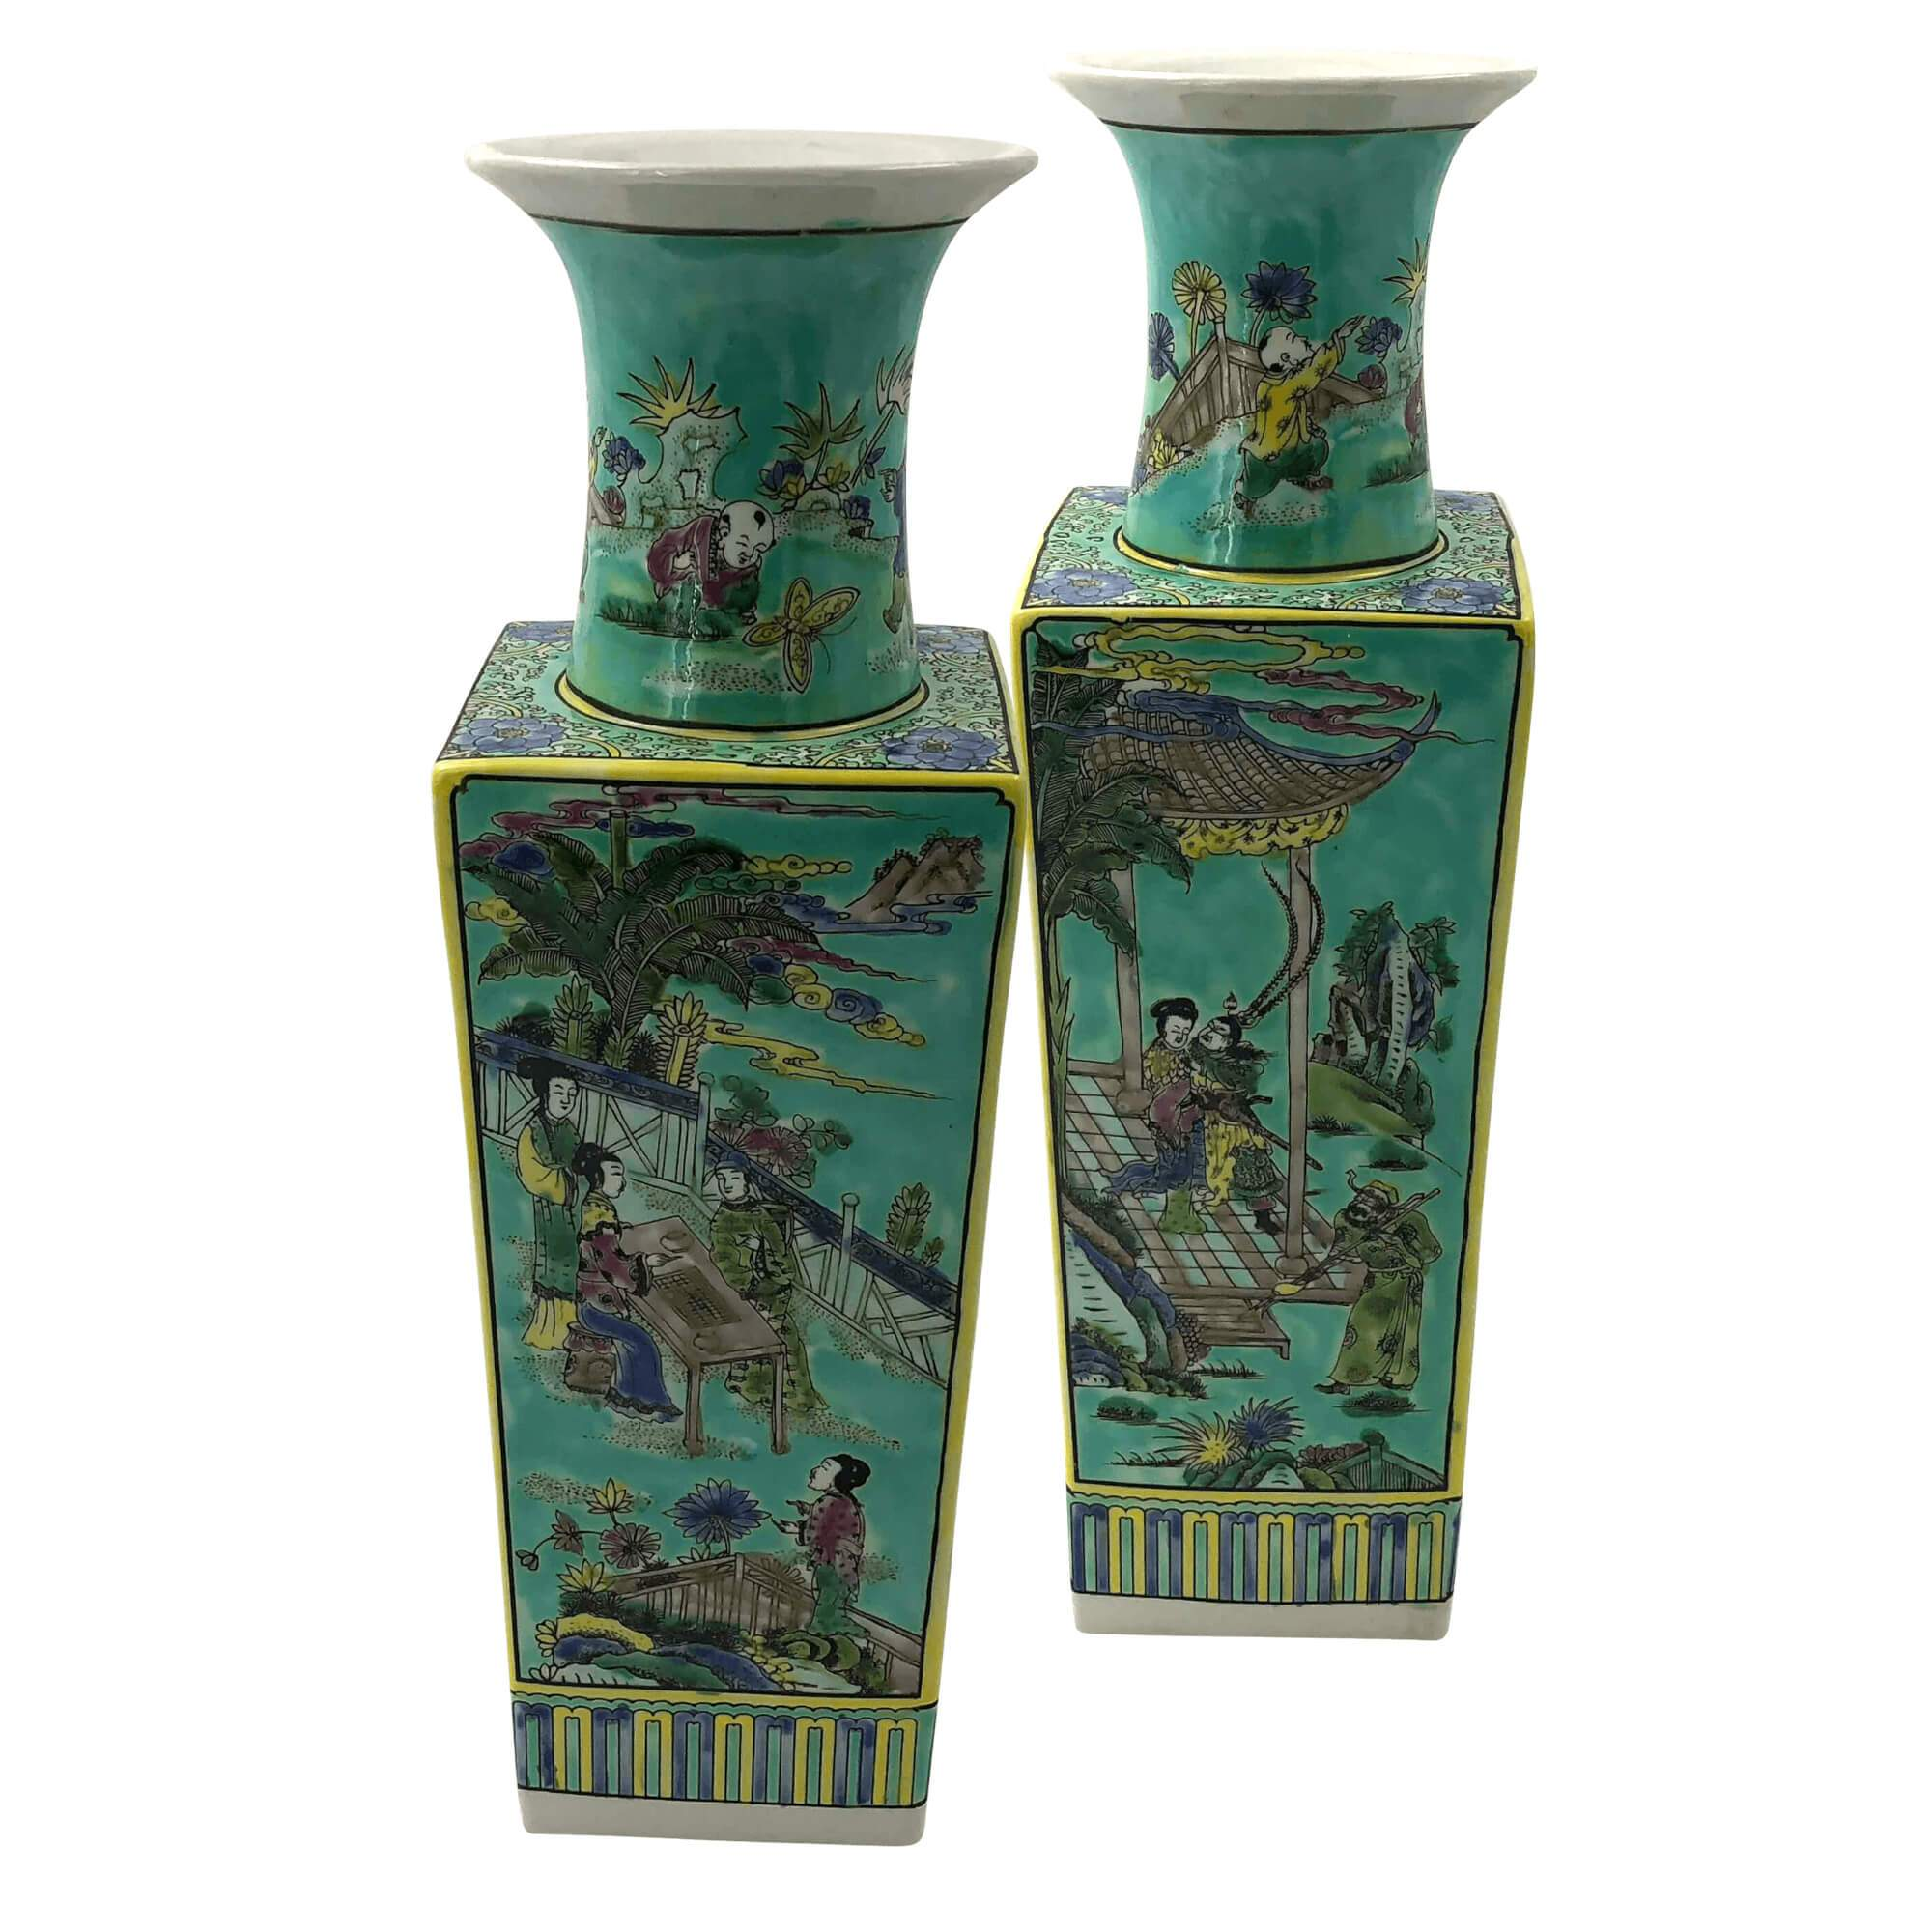 225 & Pair of Large Chinese Flower Vases